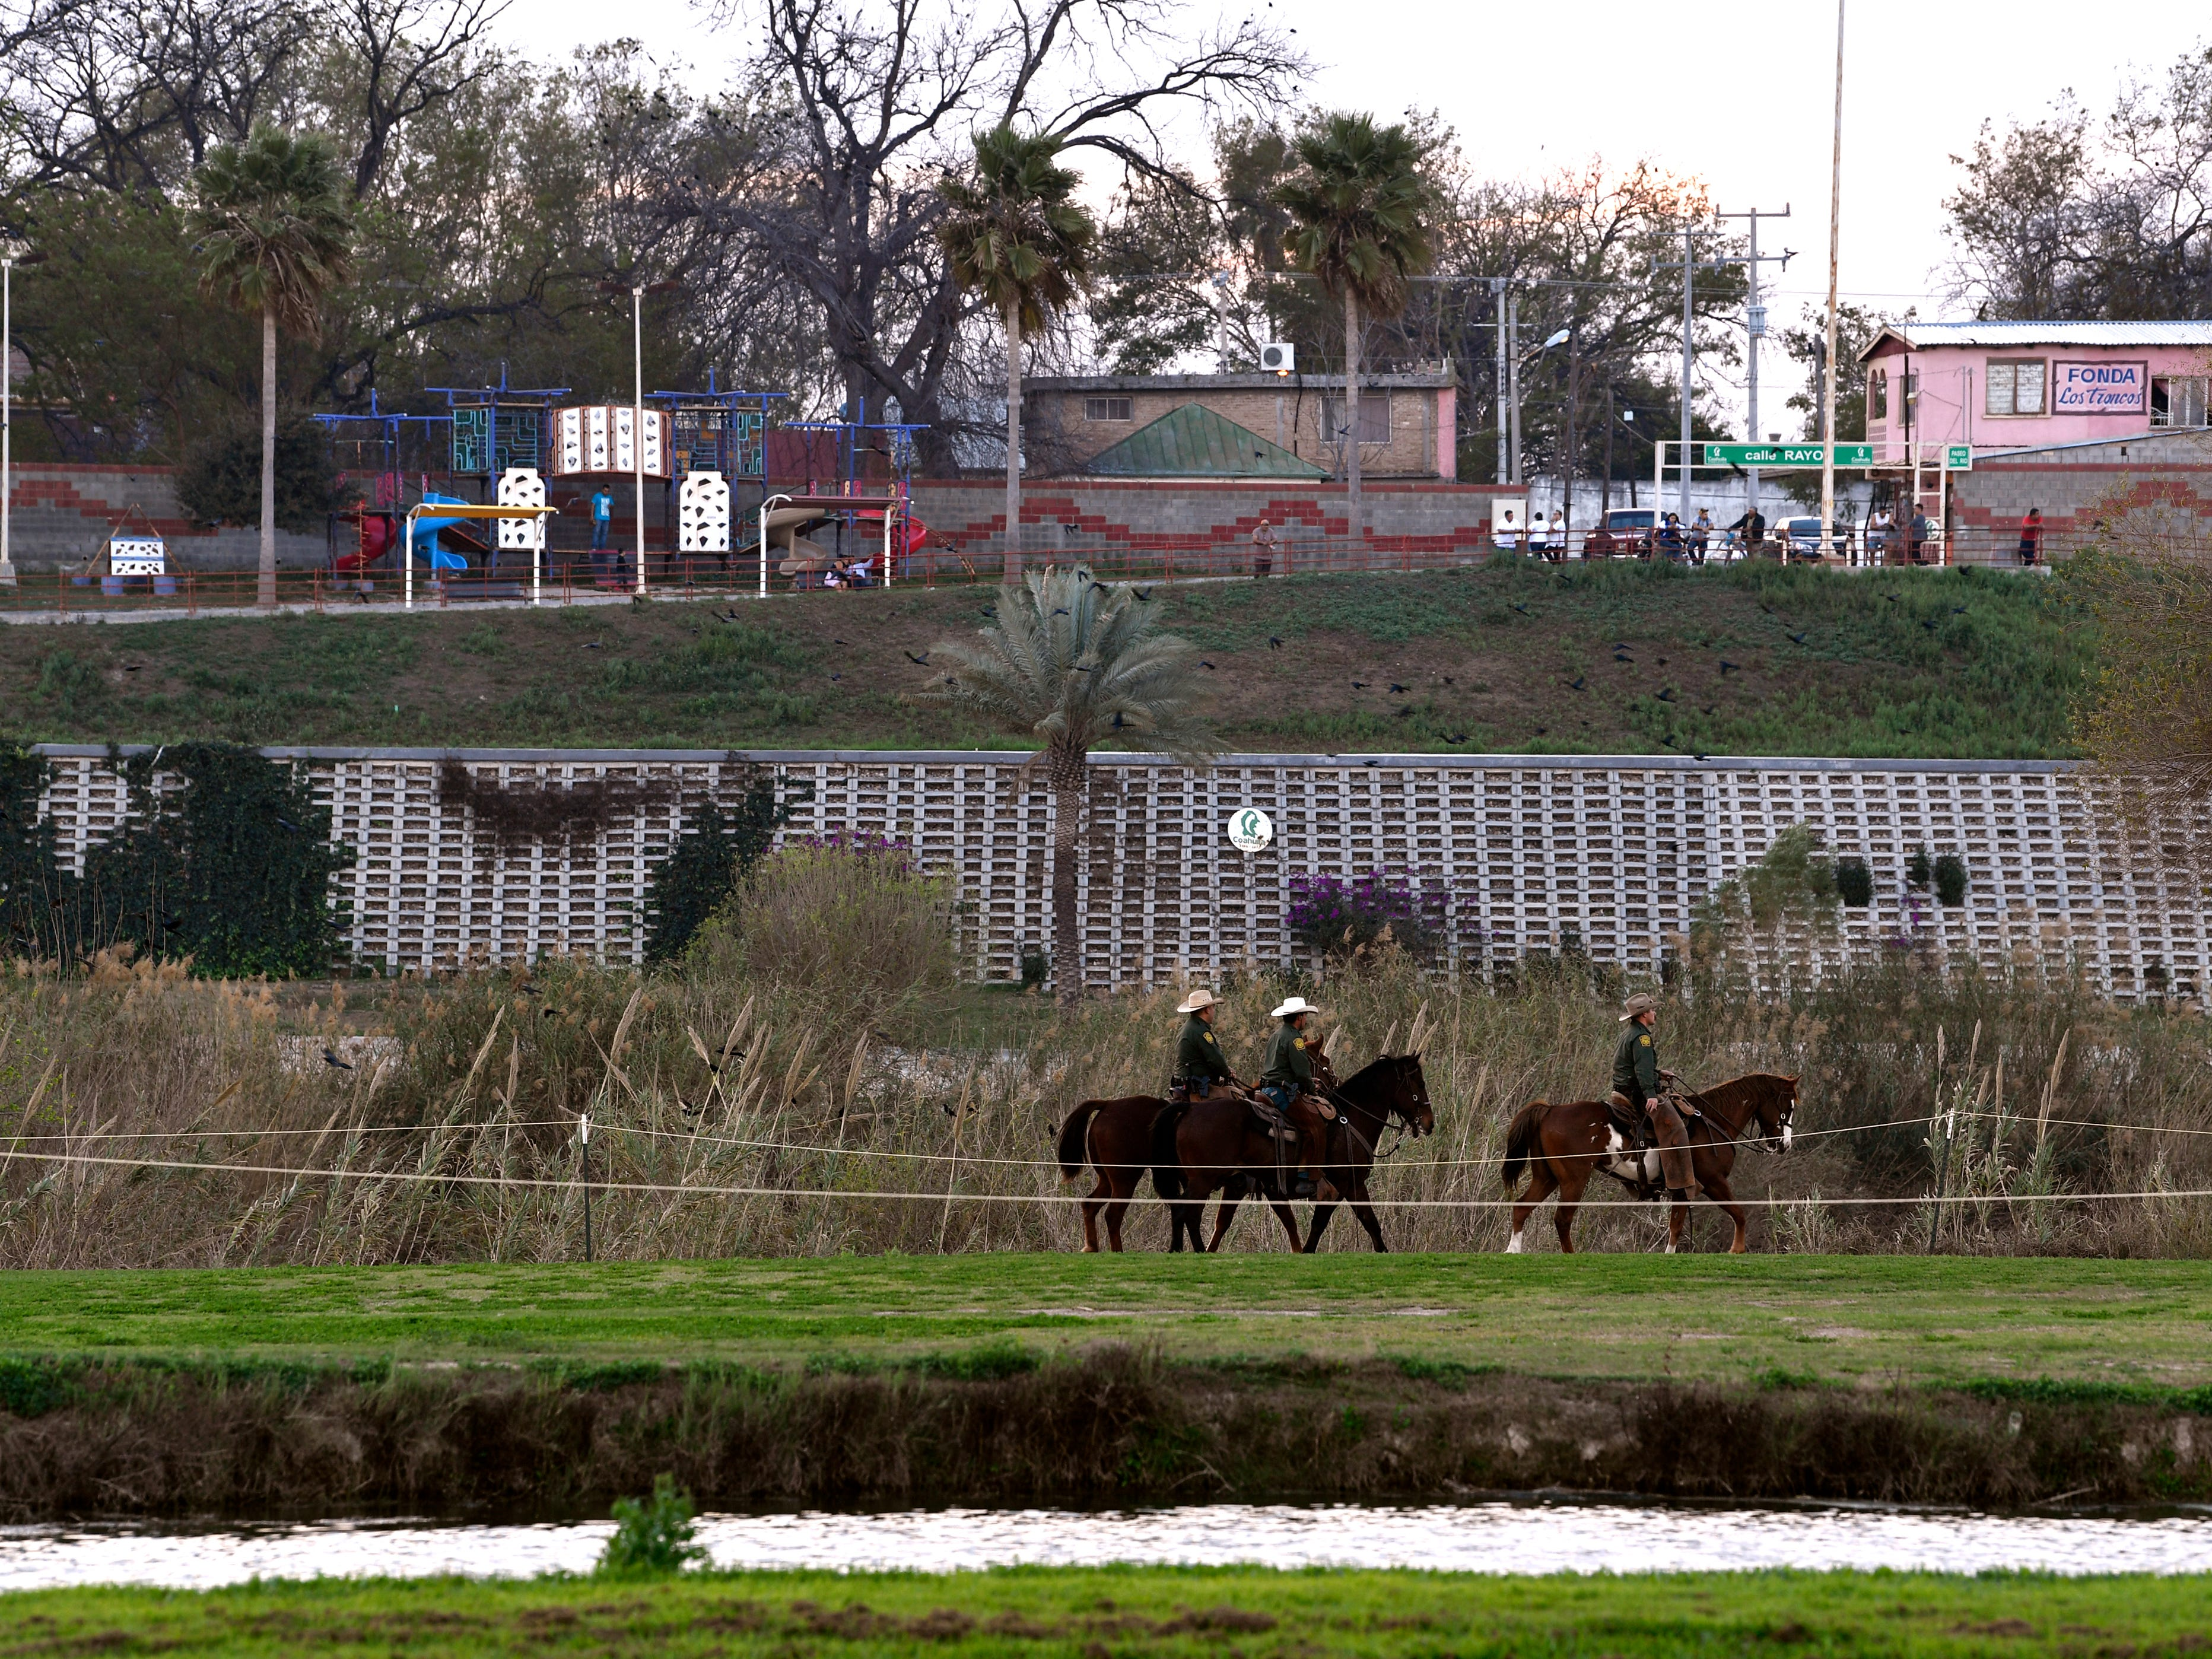 U.S. Customs and Border Protection agents ride horses Wednesday Feb. 6, 2019 along the Rio Grand between the two bridges connecting Eagle Pass to Piedras Negras. A caravan of Central American migrants has arrived in Piedras Negras and border law enforcement officials have increased their presence in response.